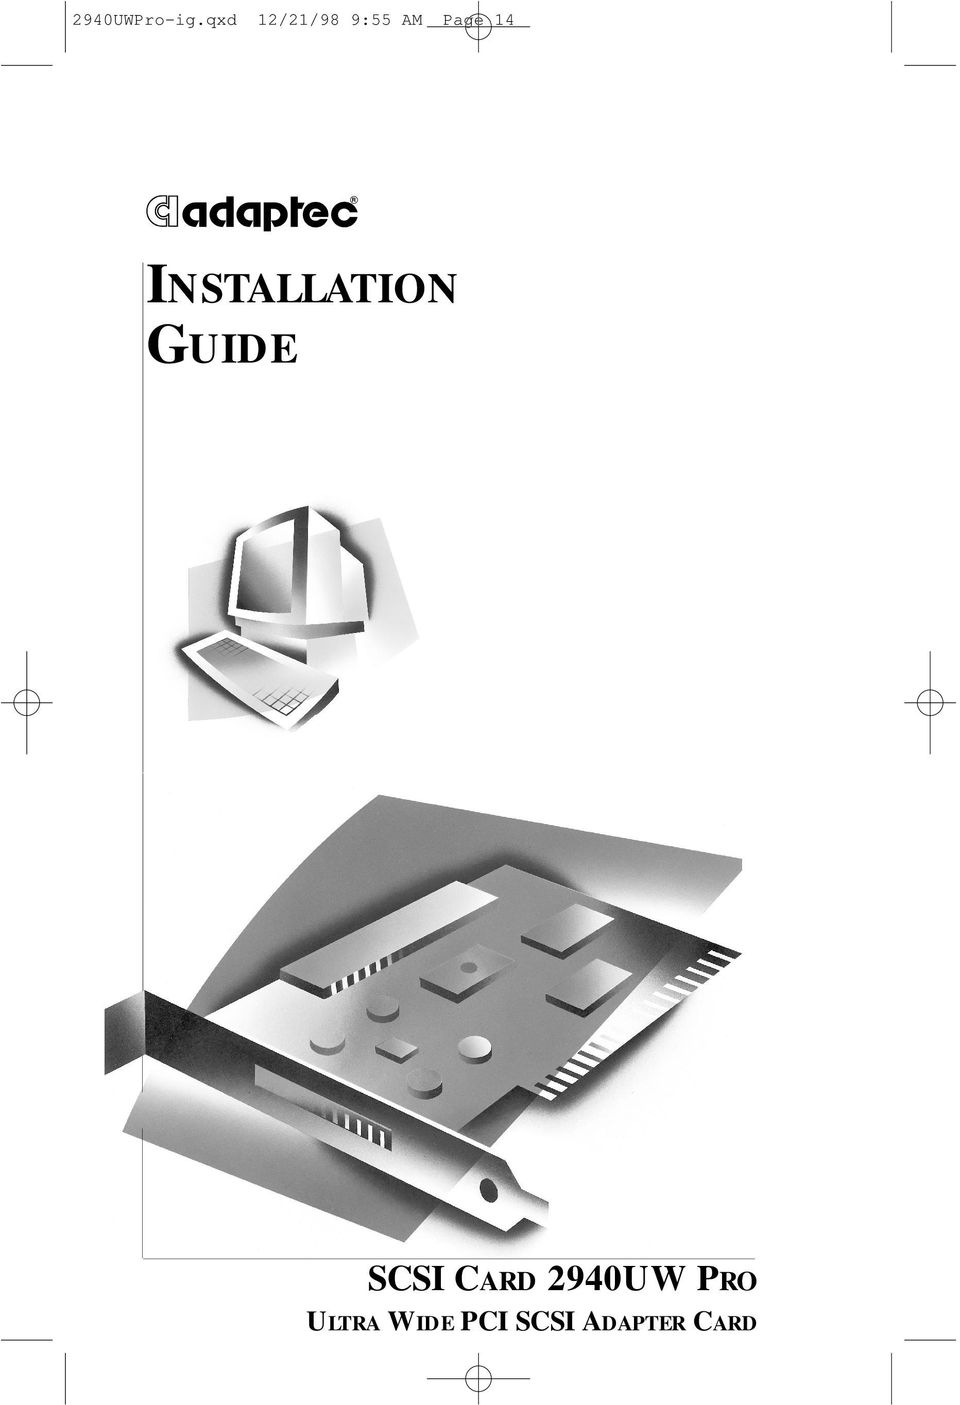 R INSTALLATION GUIDE SCSI